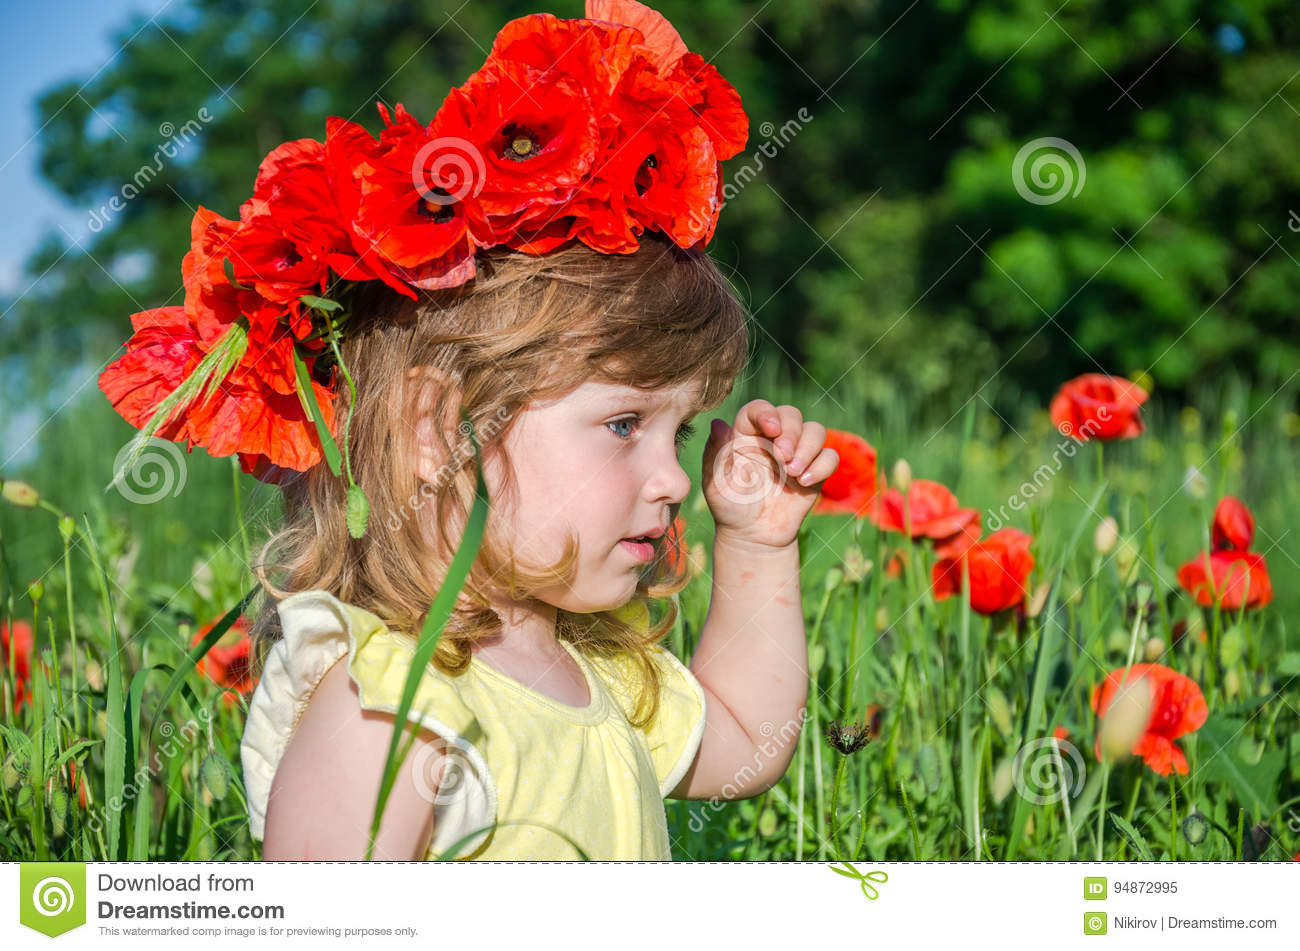 Charming Little Girl In A Poppy Field With A Bouquet Of Poppies On